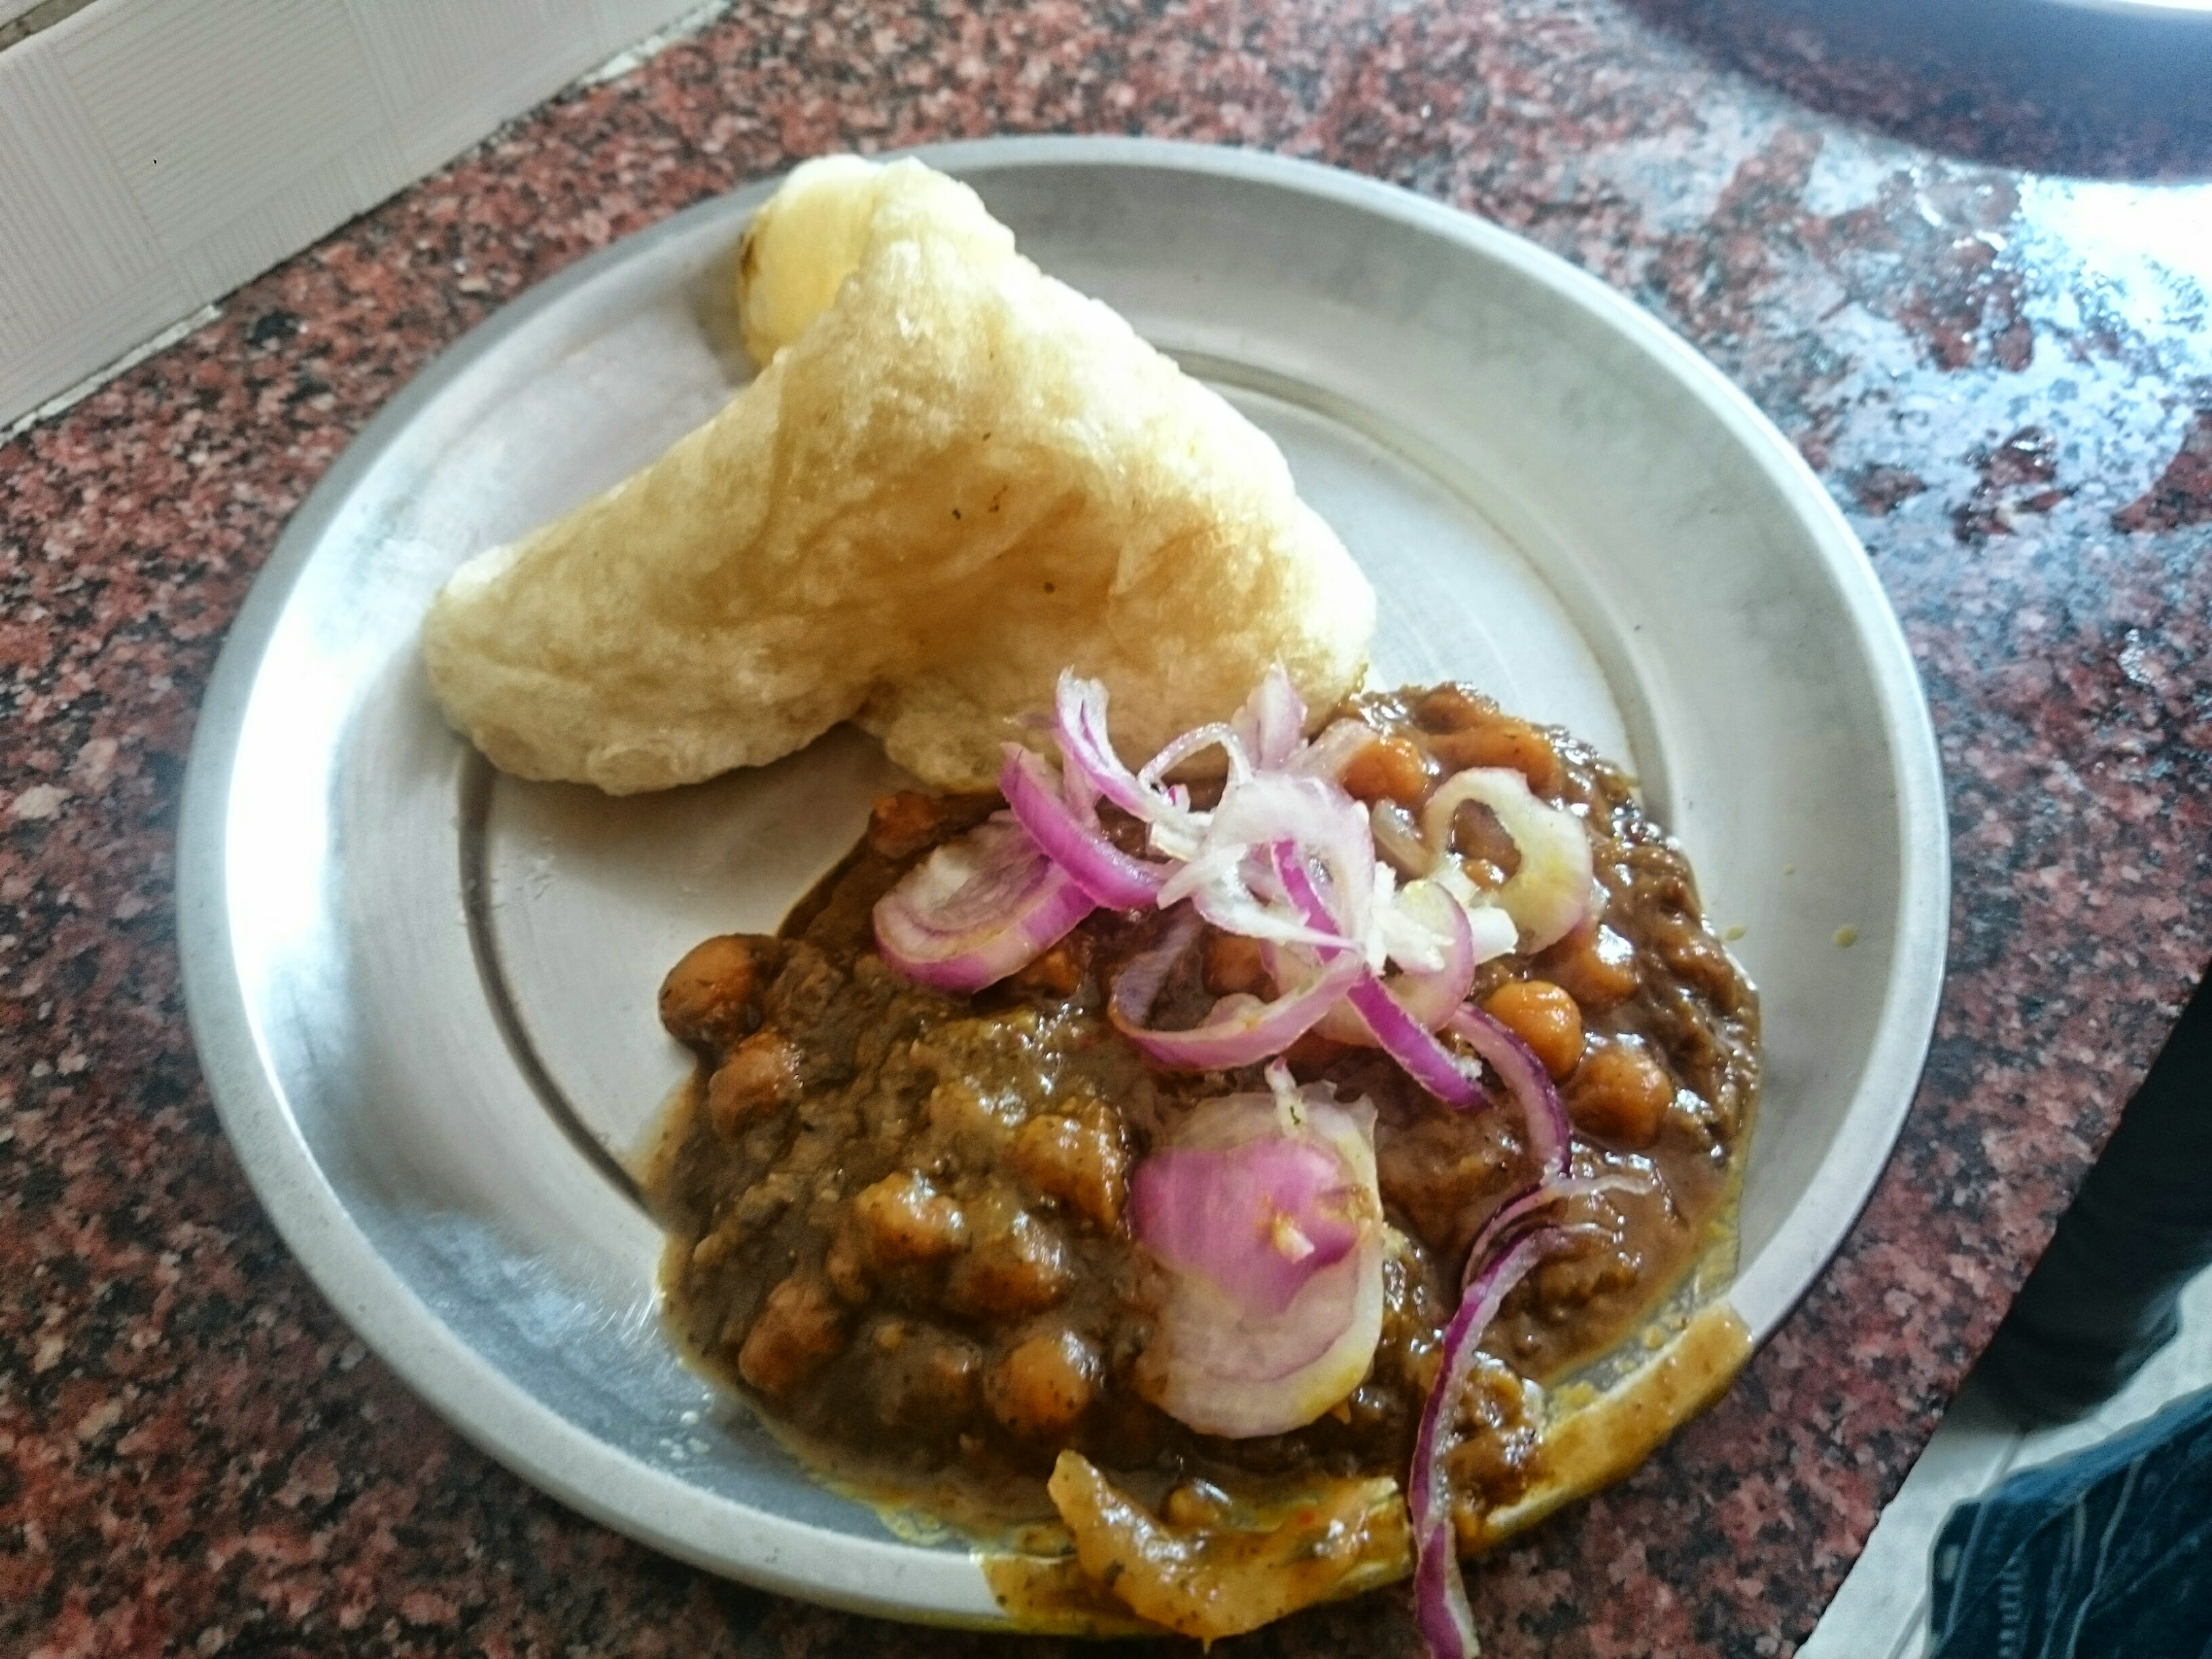 https://upload.wikimedia.org/wikipedia/commons/0/0d/Famous_Shimla's_Chole_Bhature.jpg